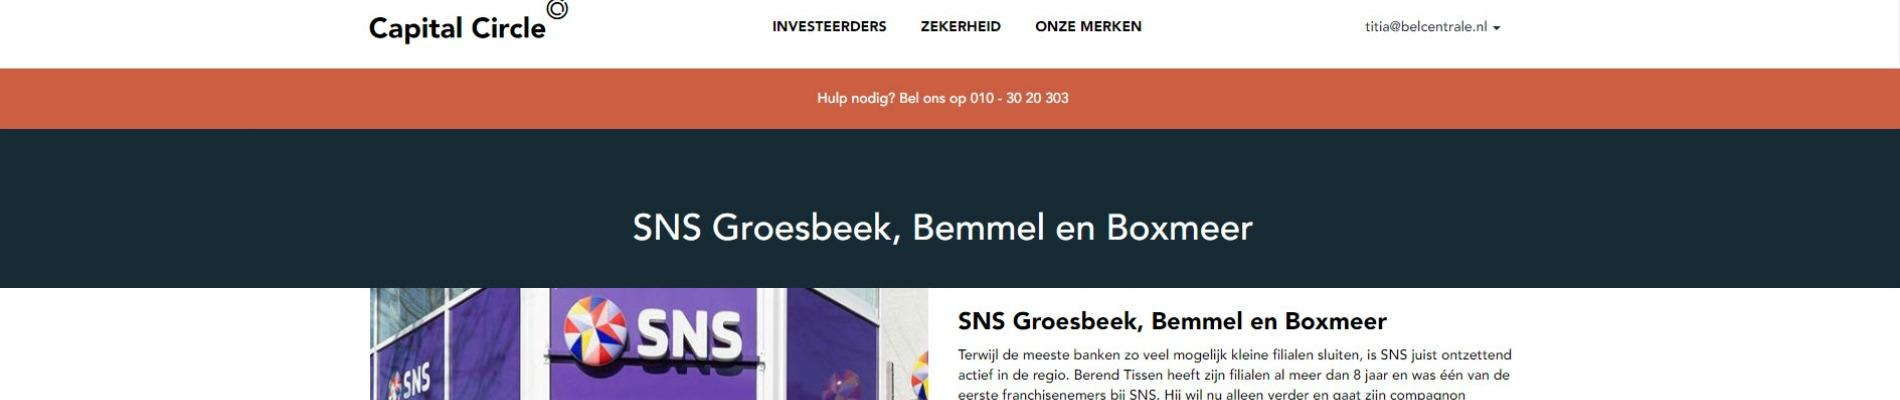 Capital Circle start crowdfunding in samenwerking met SNS Franchise